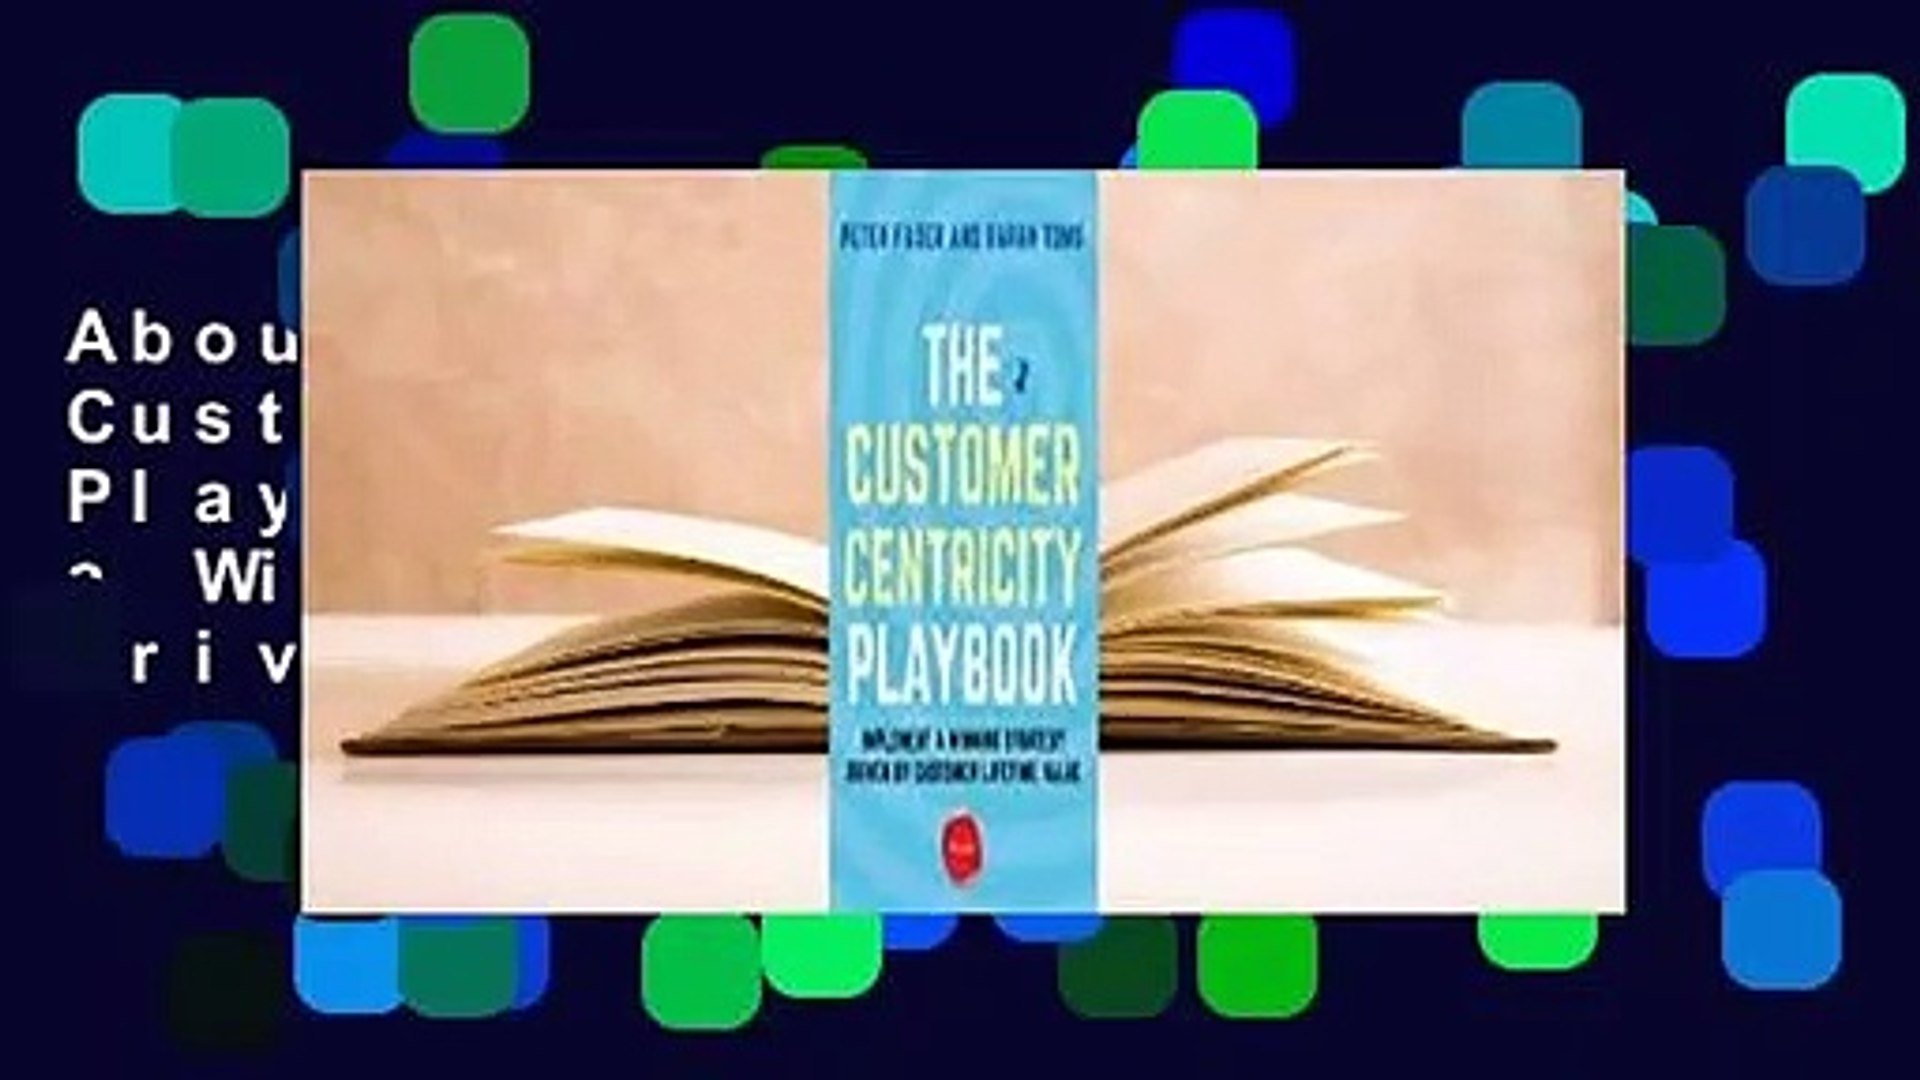 About For Books  The Customer Centricity Playbook: Implement a Winning Strategy Driven by Customer